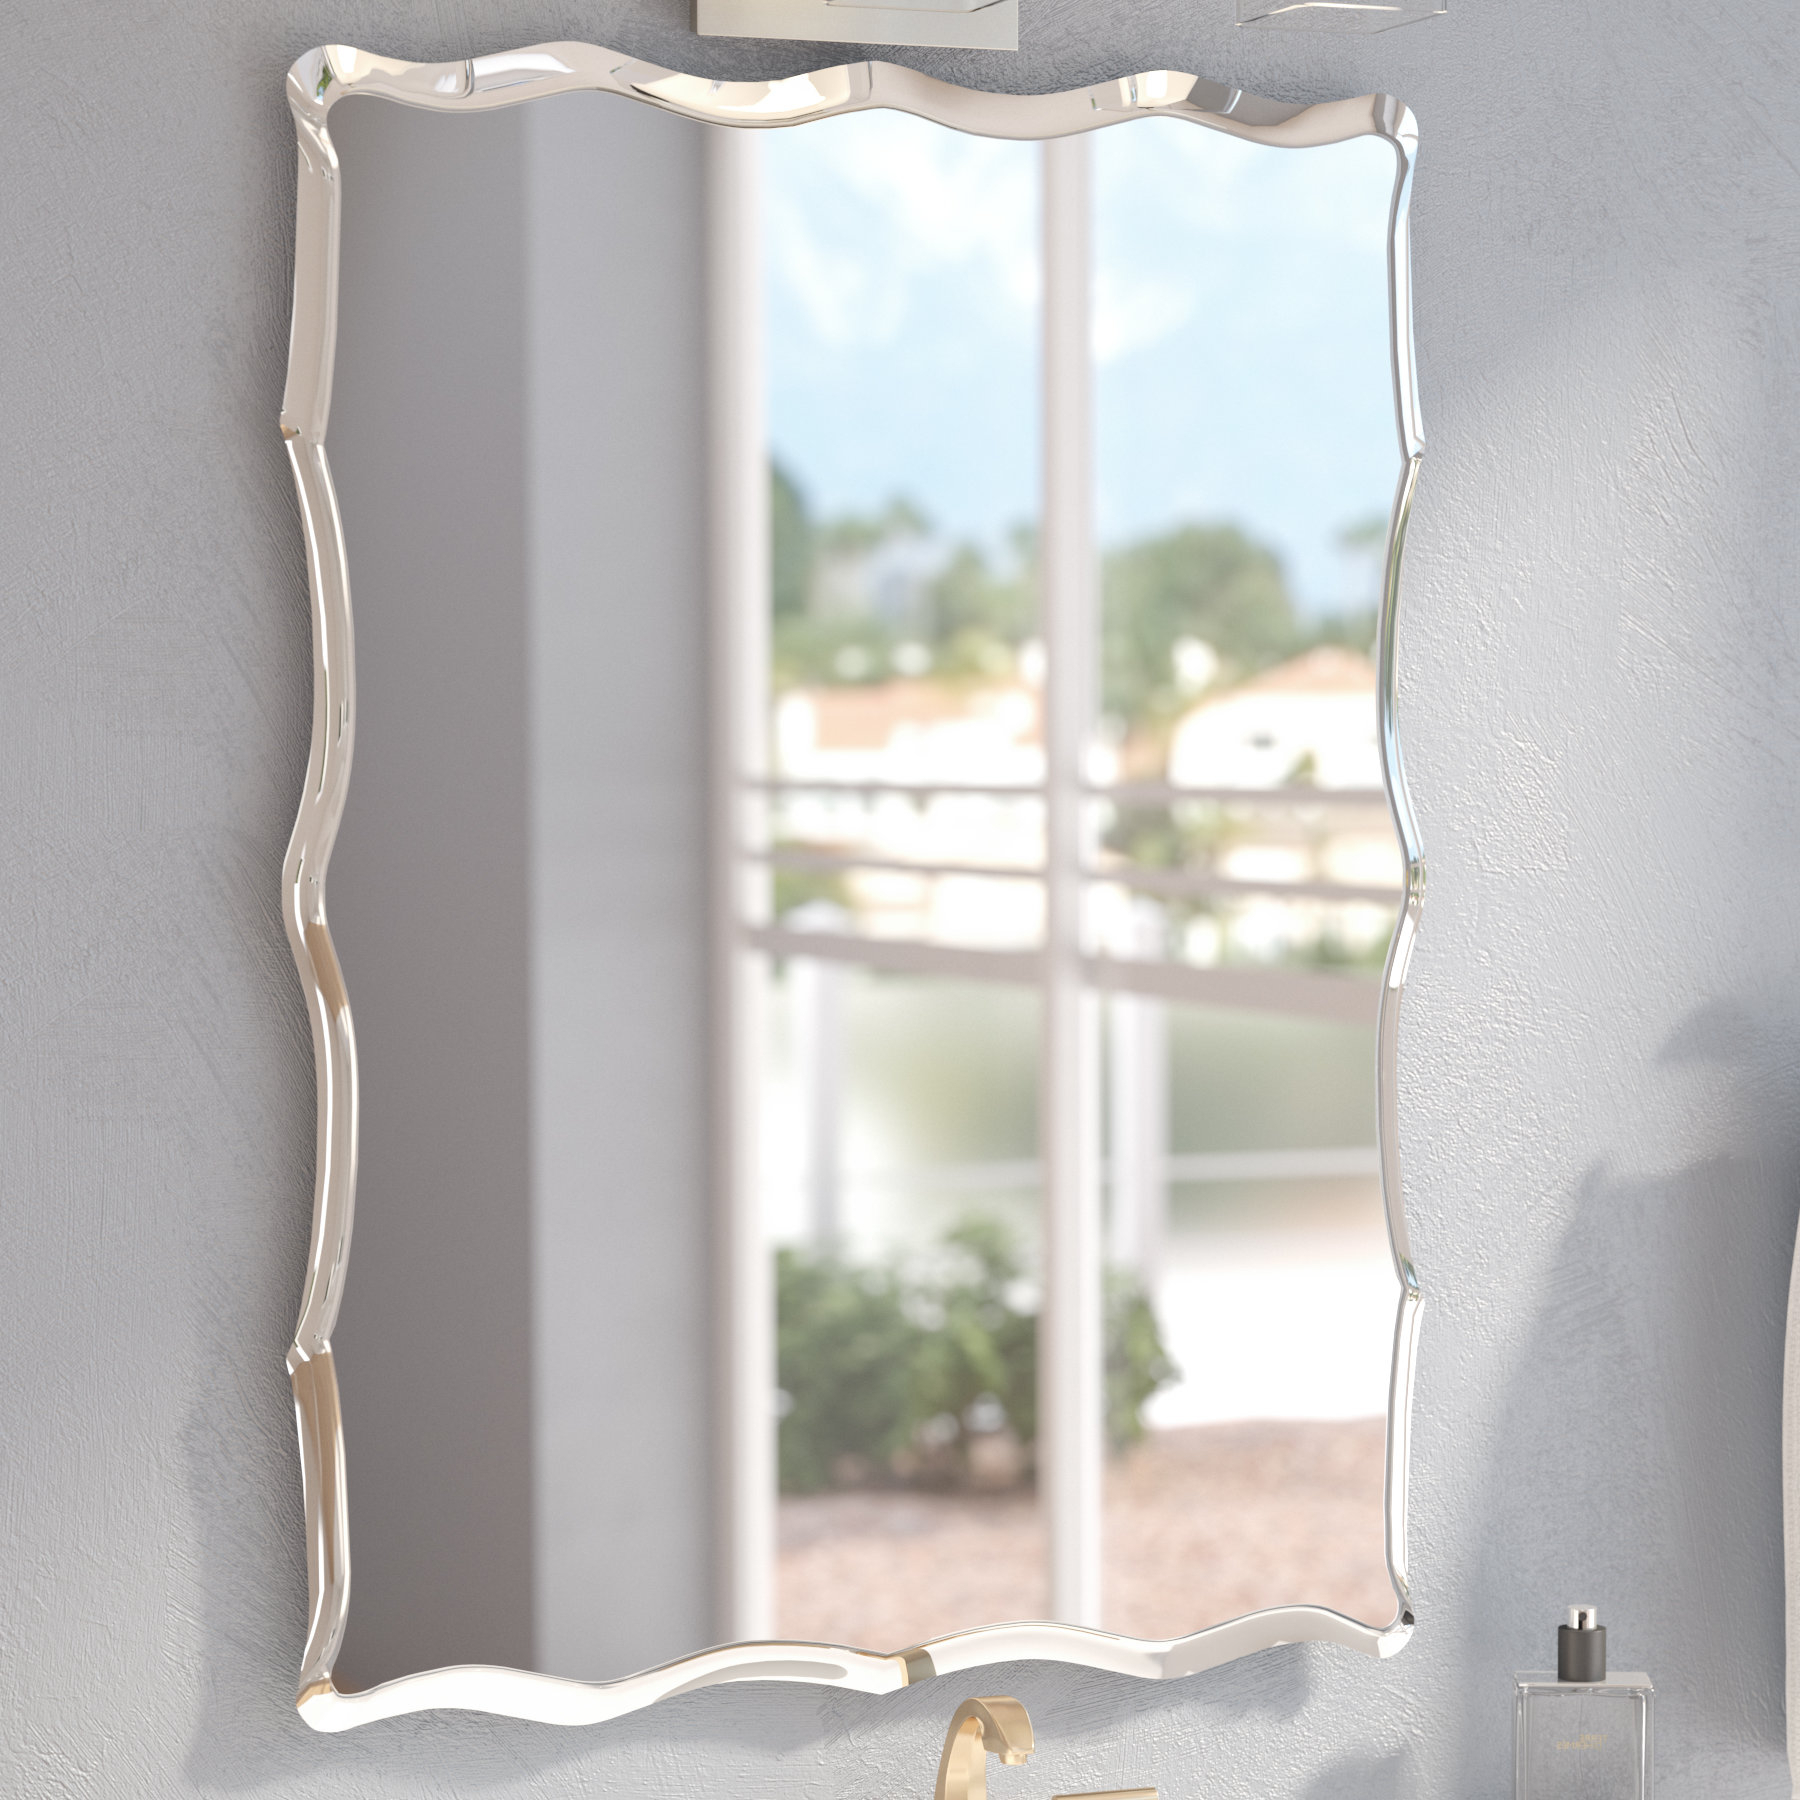 2020 Wall Mirrors With Estefania Frameless Wall Mirror (View 14 of 20)